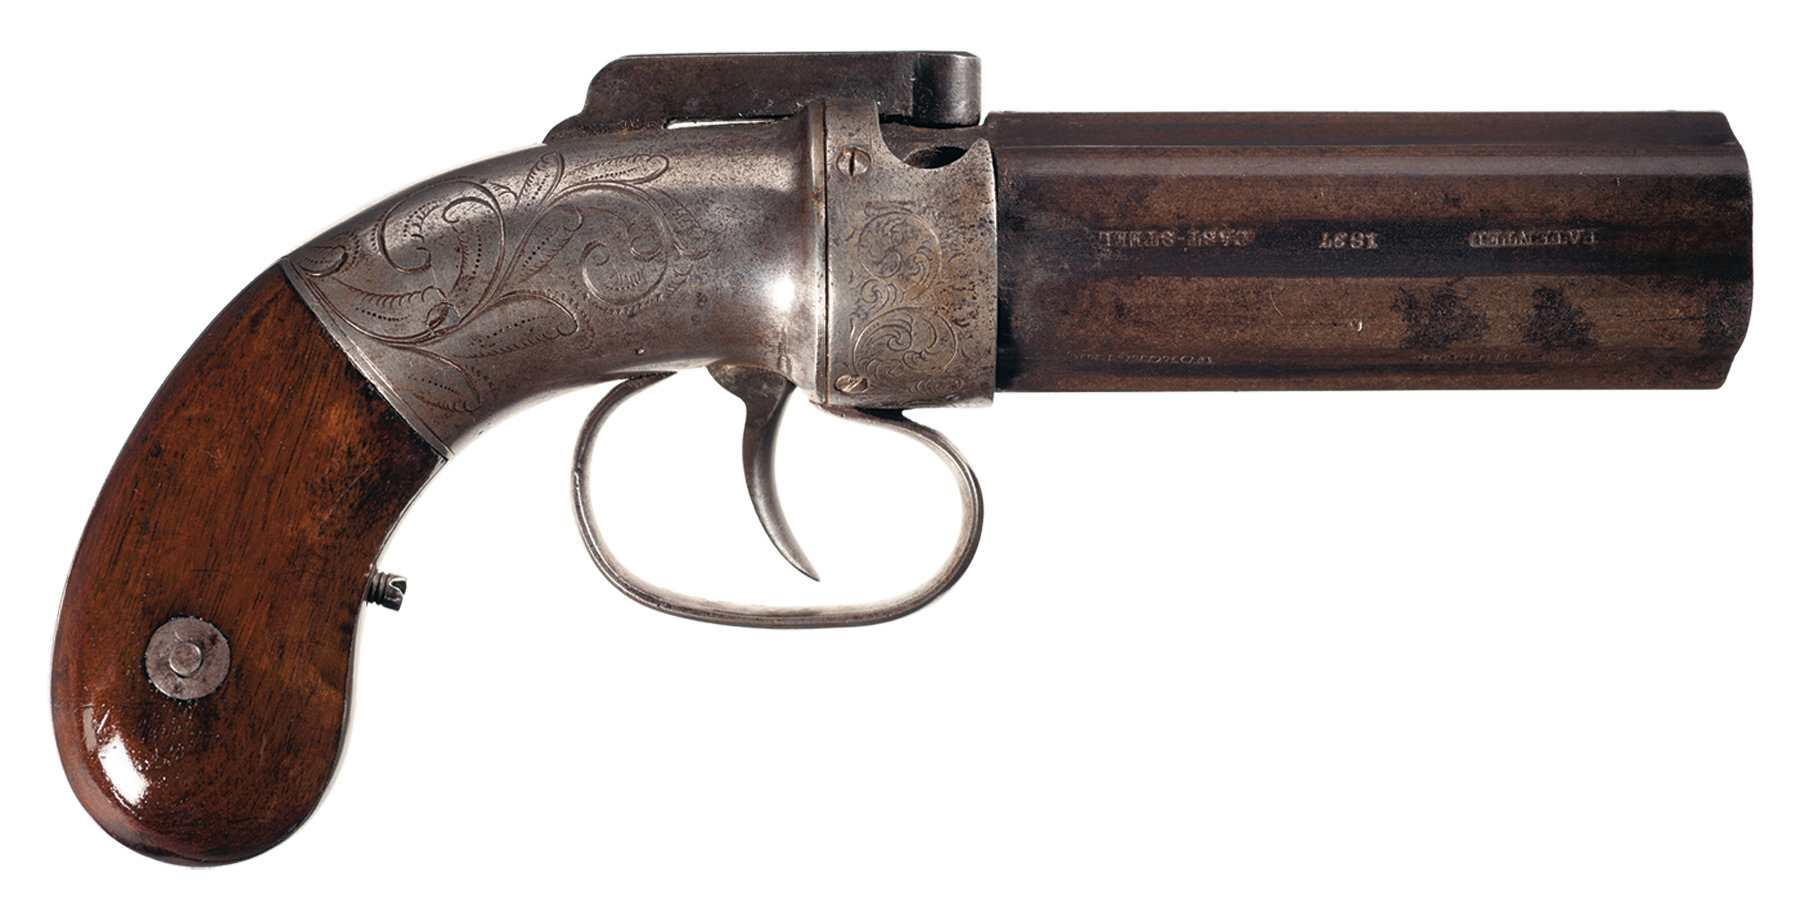 Amazing Allen & Thurber Pepperbox Pistol Pictures & Backgrounds